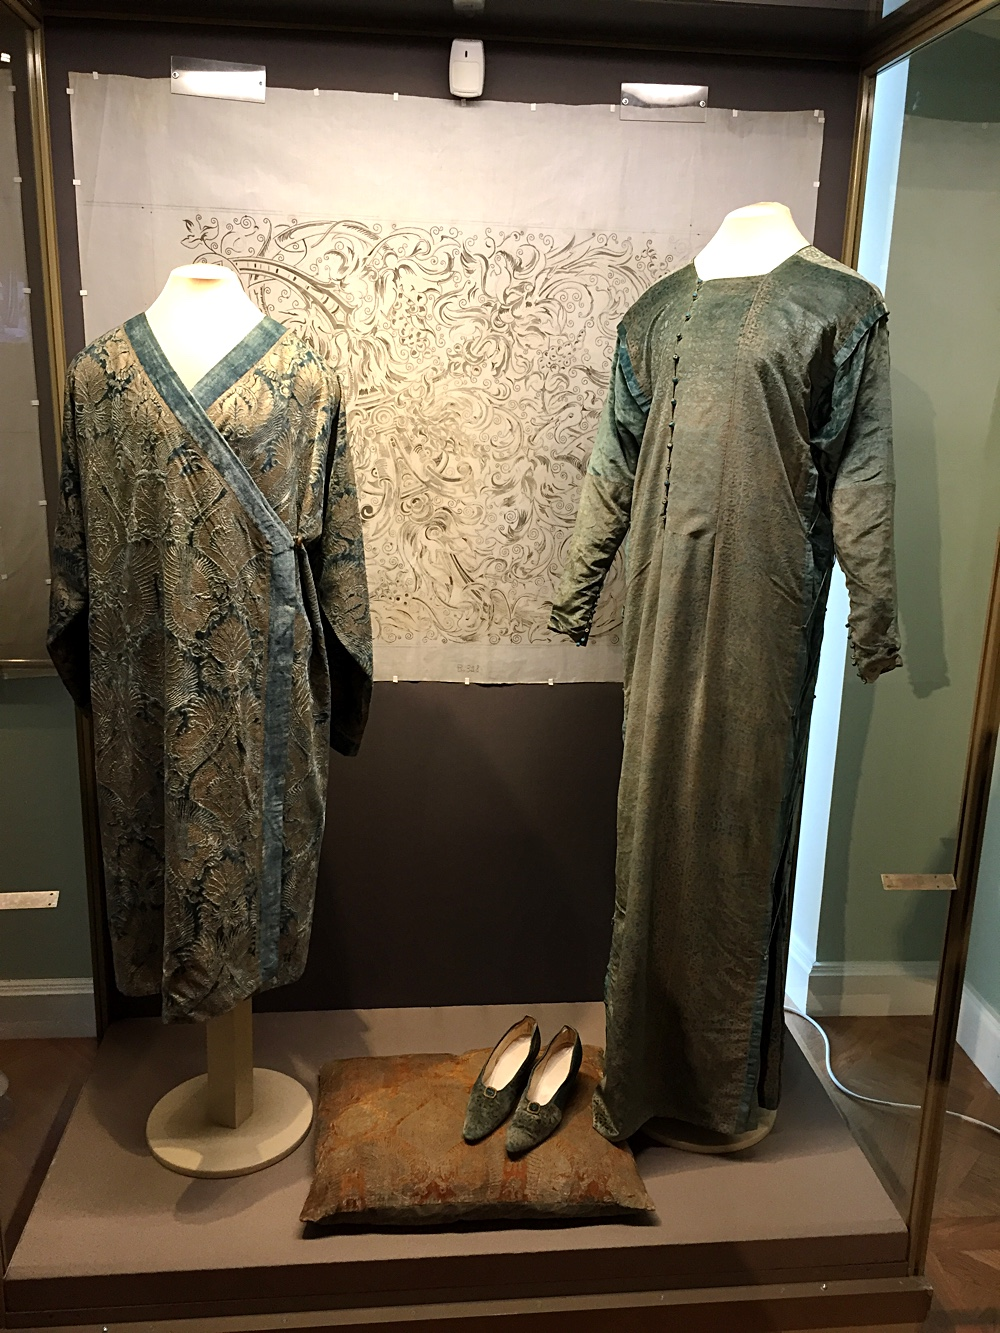 On the right - a full length velvet with gold printed Venetian lace pattern tabard gown Eleonora from Shoe Icons collection.